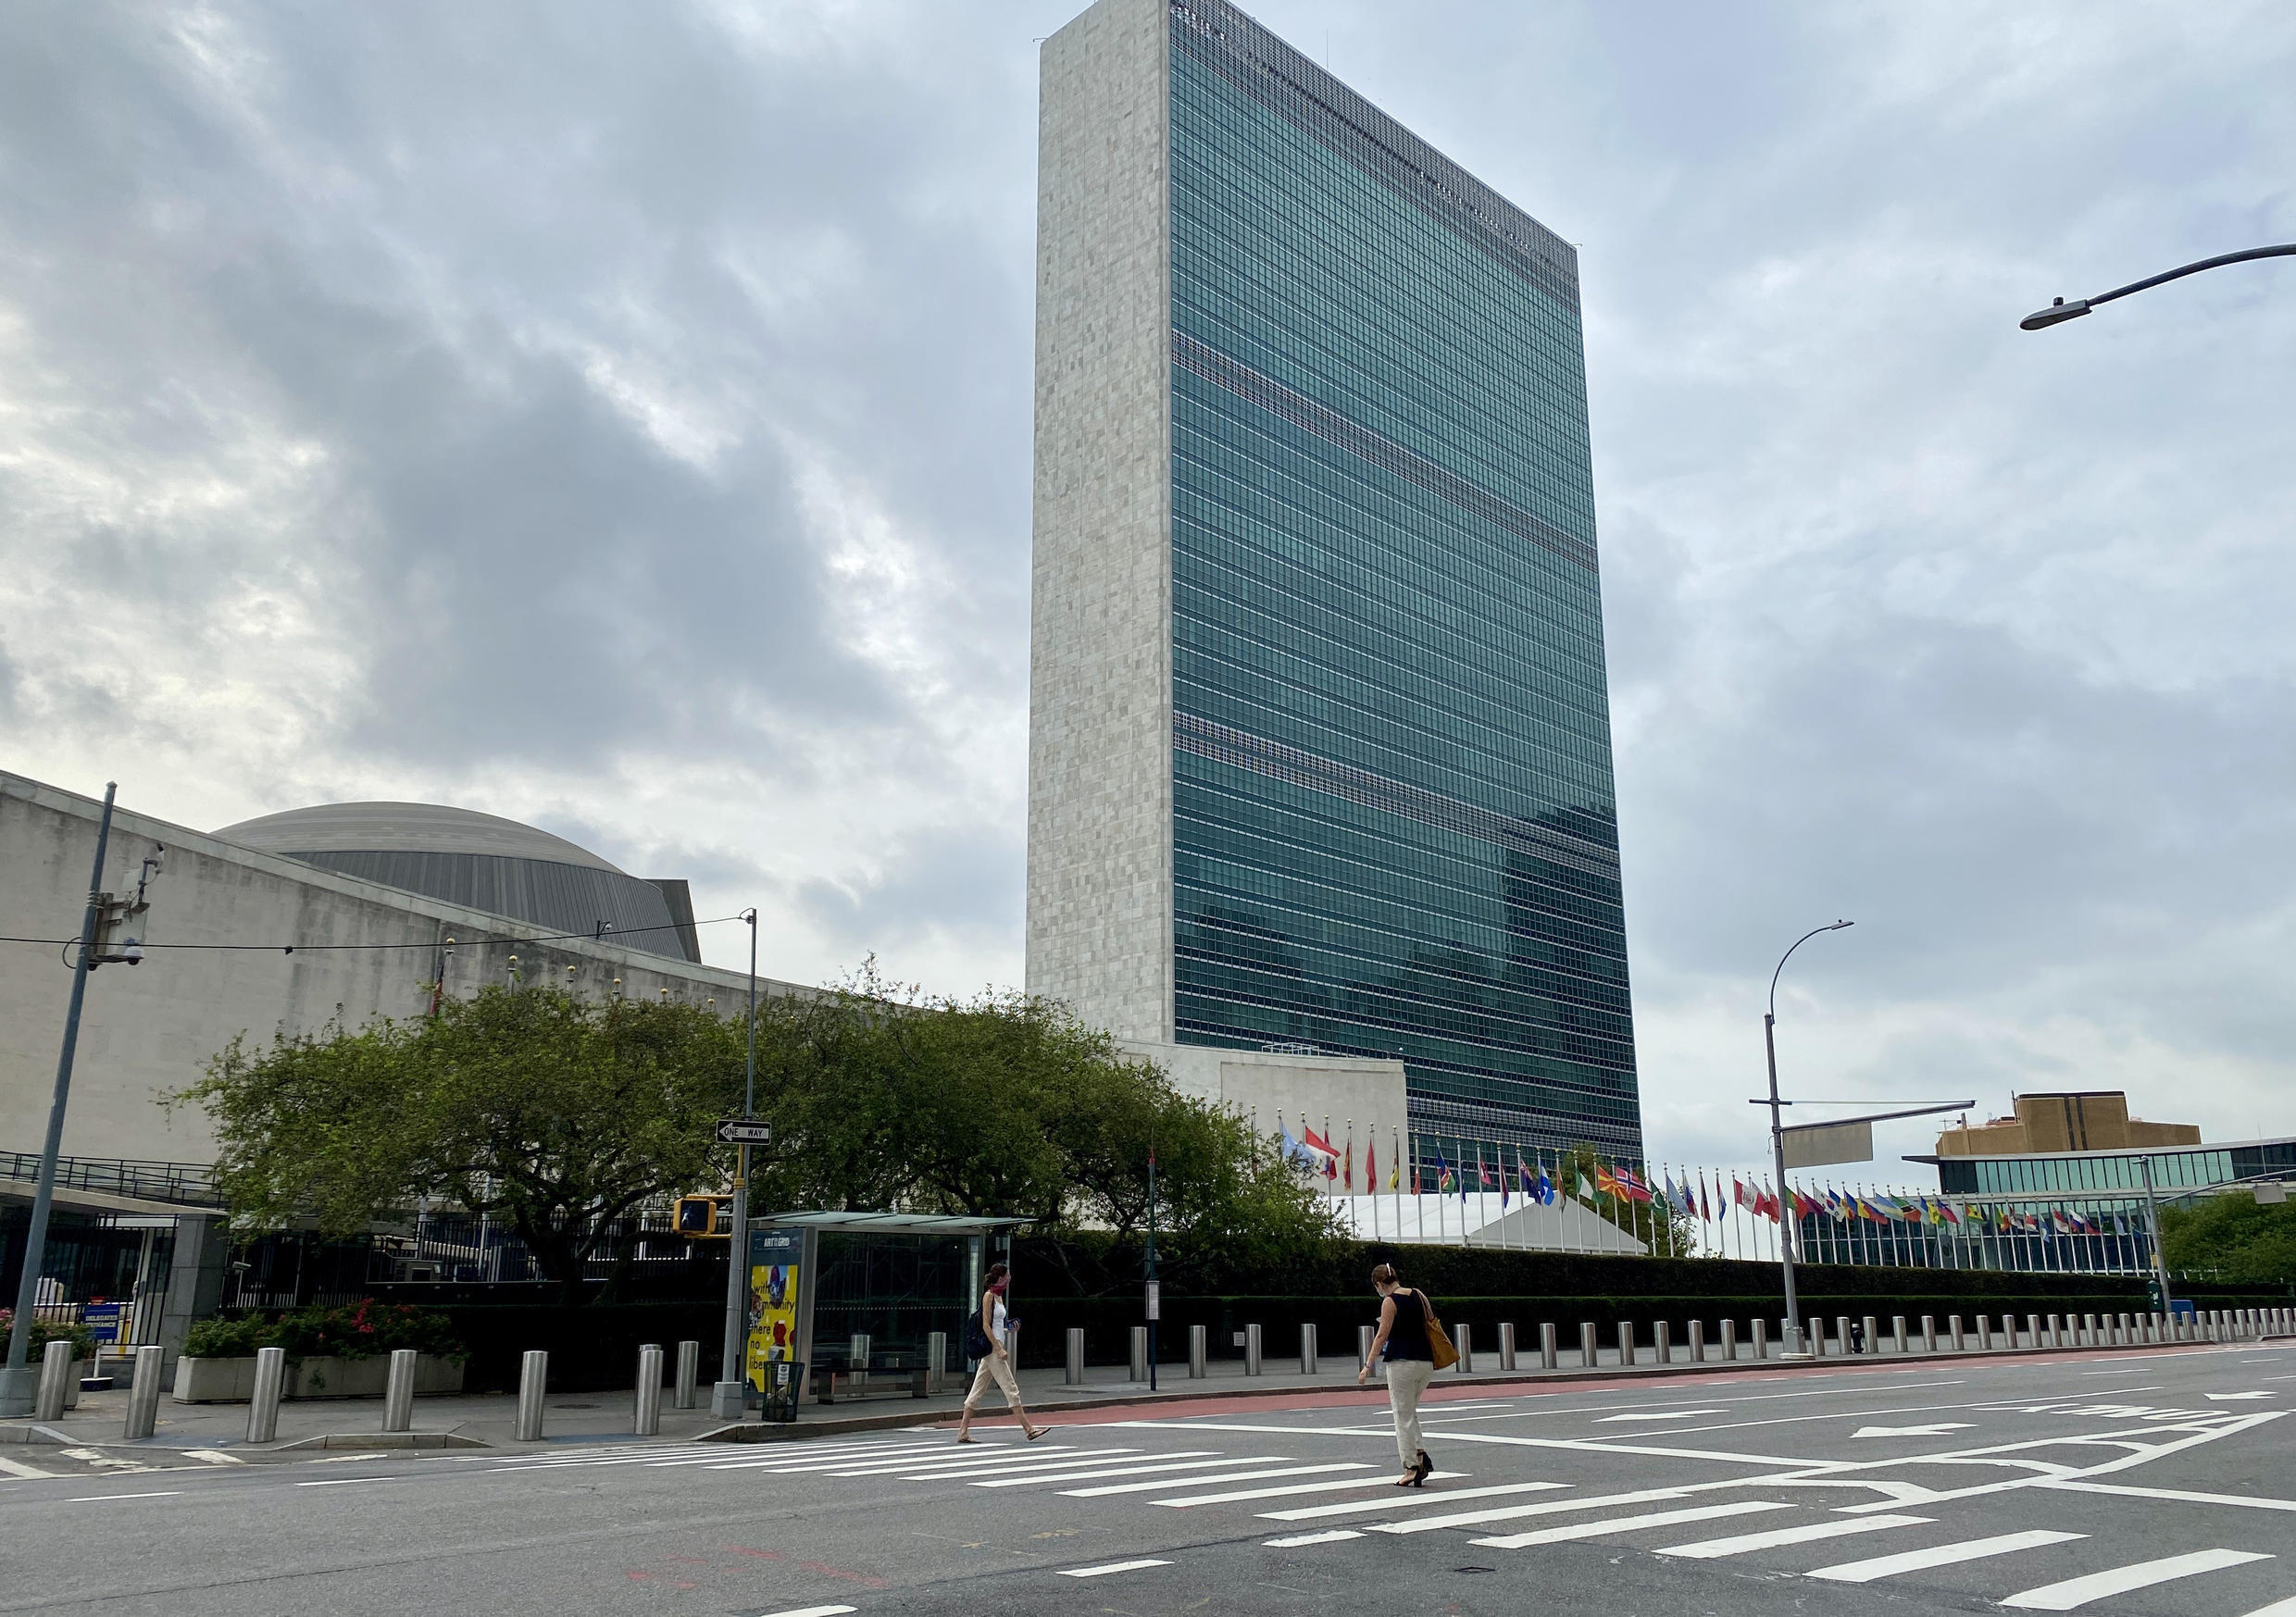 Covid-19 has upended the UN General Assembly: for once, Midtown Manhattan will not be bunkered down in a frenzy of motorcades, and there will be no speculation of breakthrough meetings